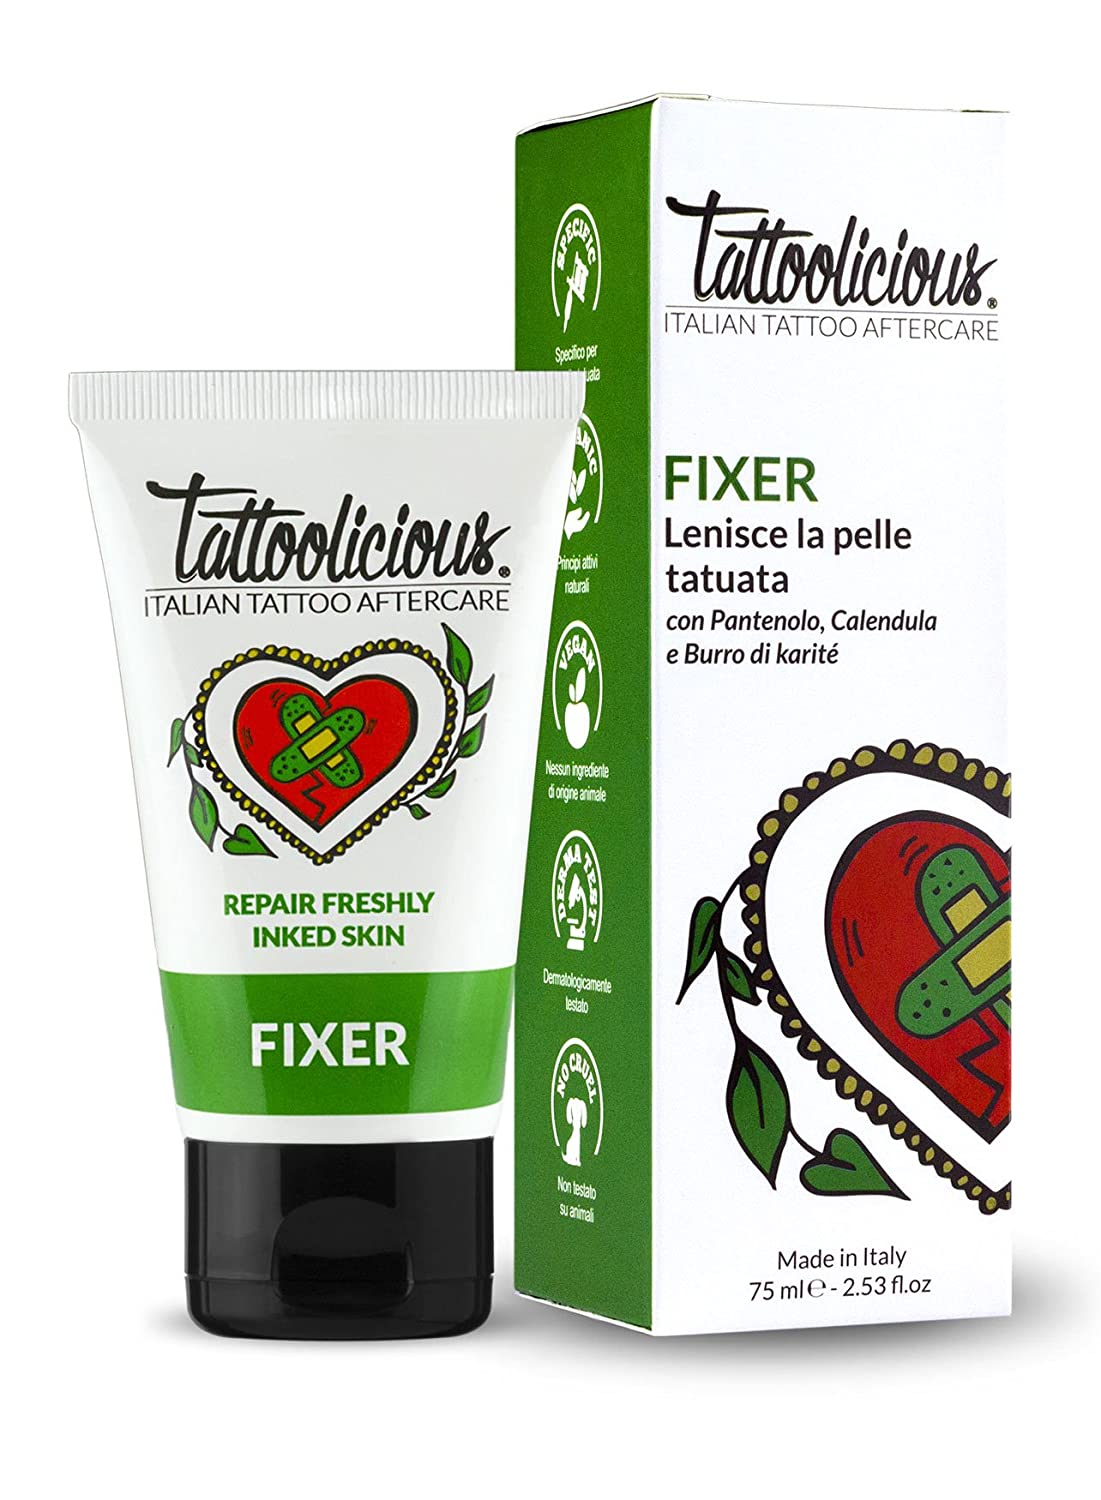 TATTOOLICIOUS® FIXER - 75 ml - Crema lenitiva biologica specifica per la cura del tatuaggio con ingredienti bio dalle proprietà cicatrizzanti Tattoolicious s.r.l.